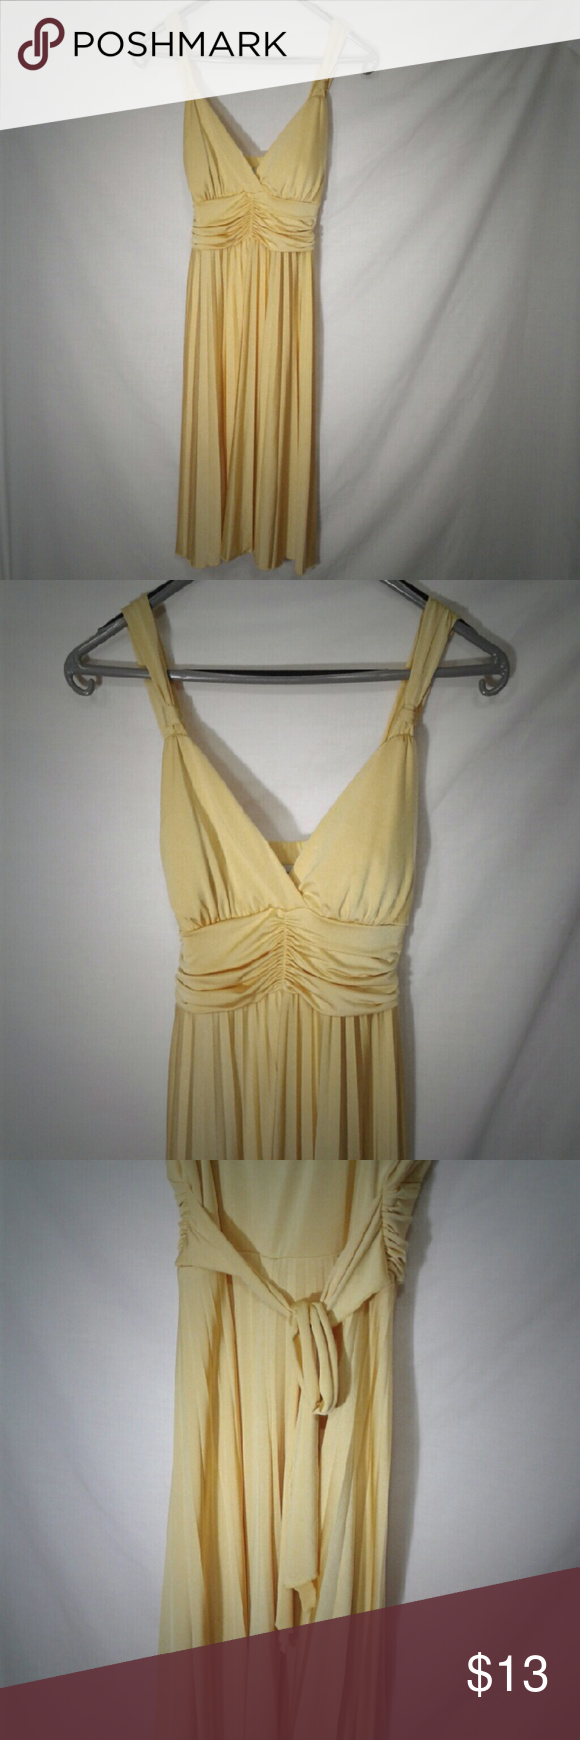 """Yellow Dress by Speechless Measurements: 40"""" shoulder to hem  14"""" waist lying flat   Material: Self: 94% polyester 6% spandex  Lining: 100% polyester   Condition: Excellent, no stains or rips   🛍 Bundle for a 20% discount 🛍 👍 Offers Considered 👍 ❌ No Model ❌ Speechless Dresses Midi"""